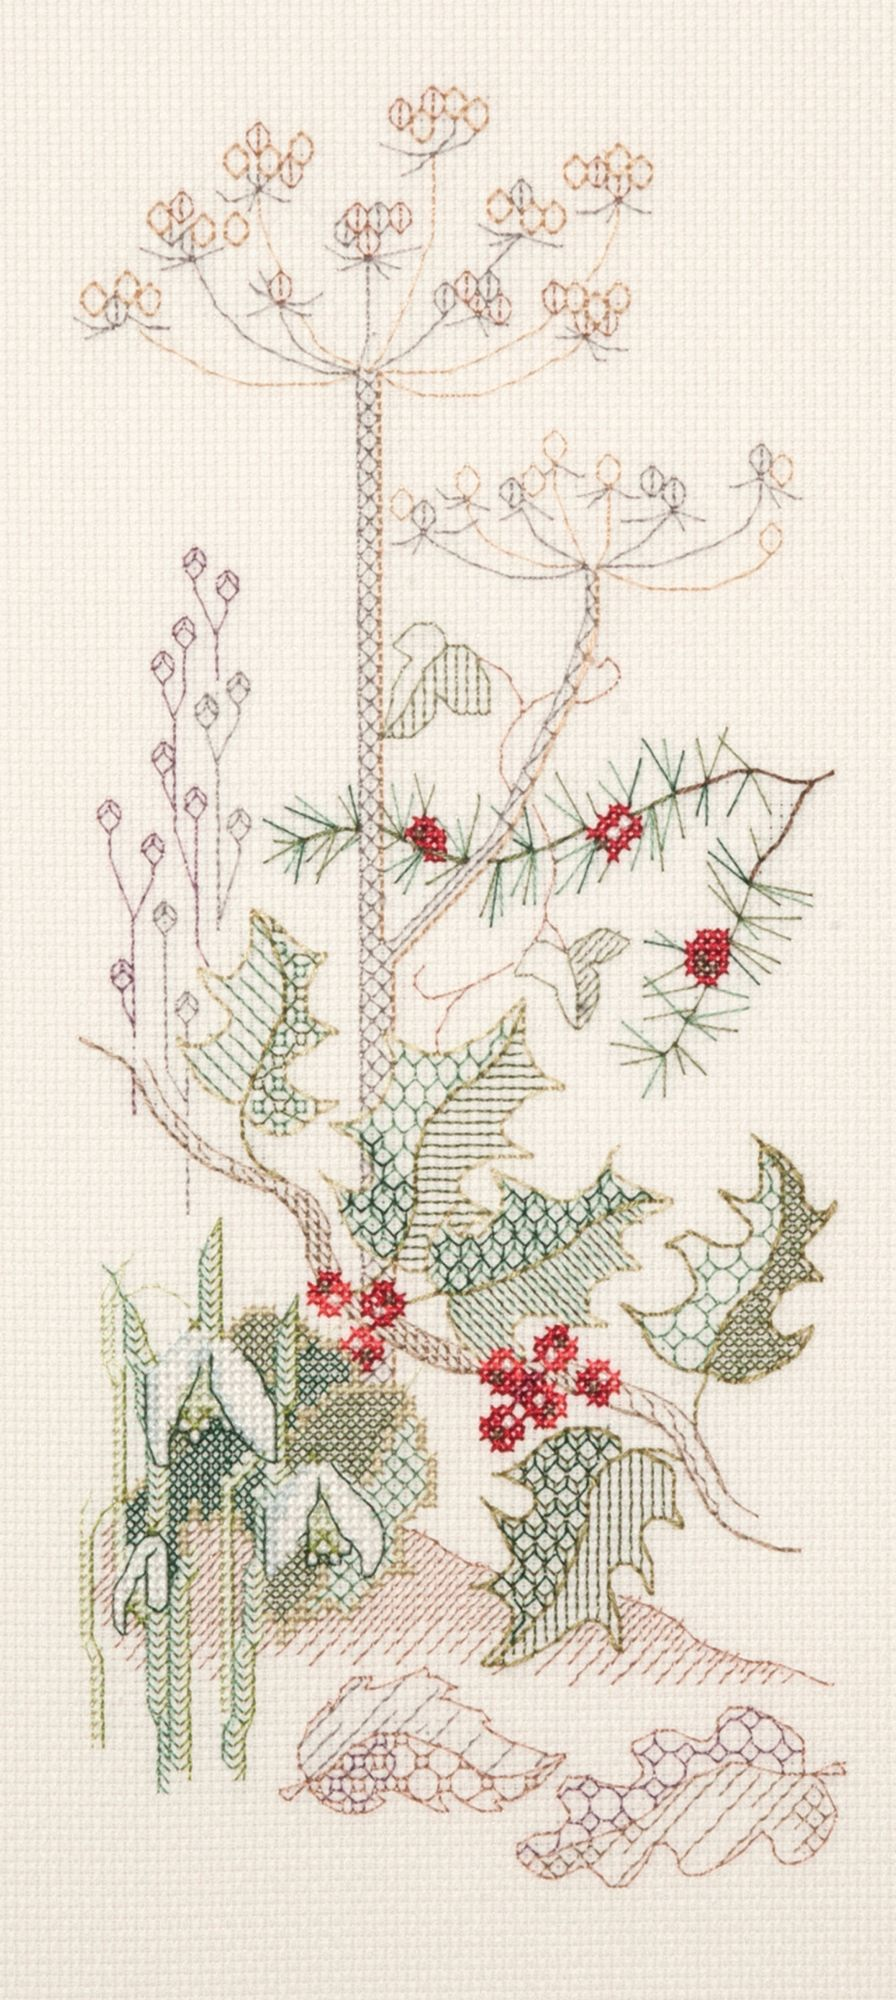 Derwent  SP04 embroidery Panels range - SP04